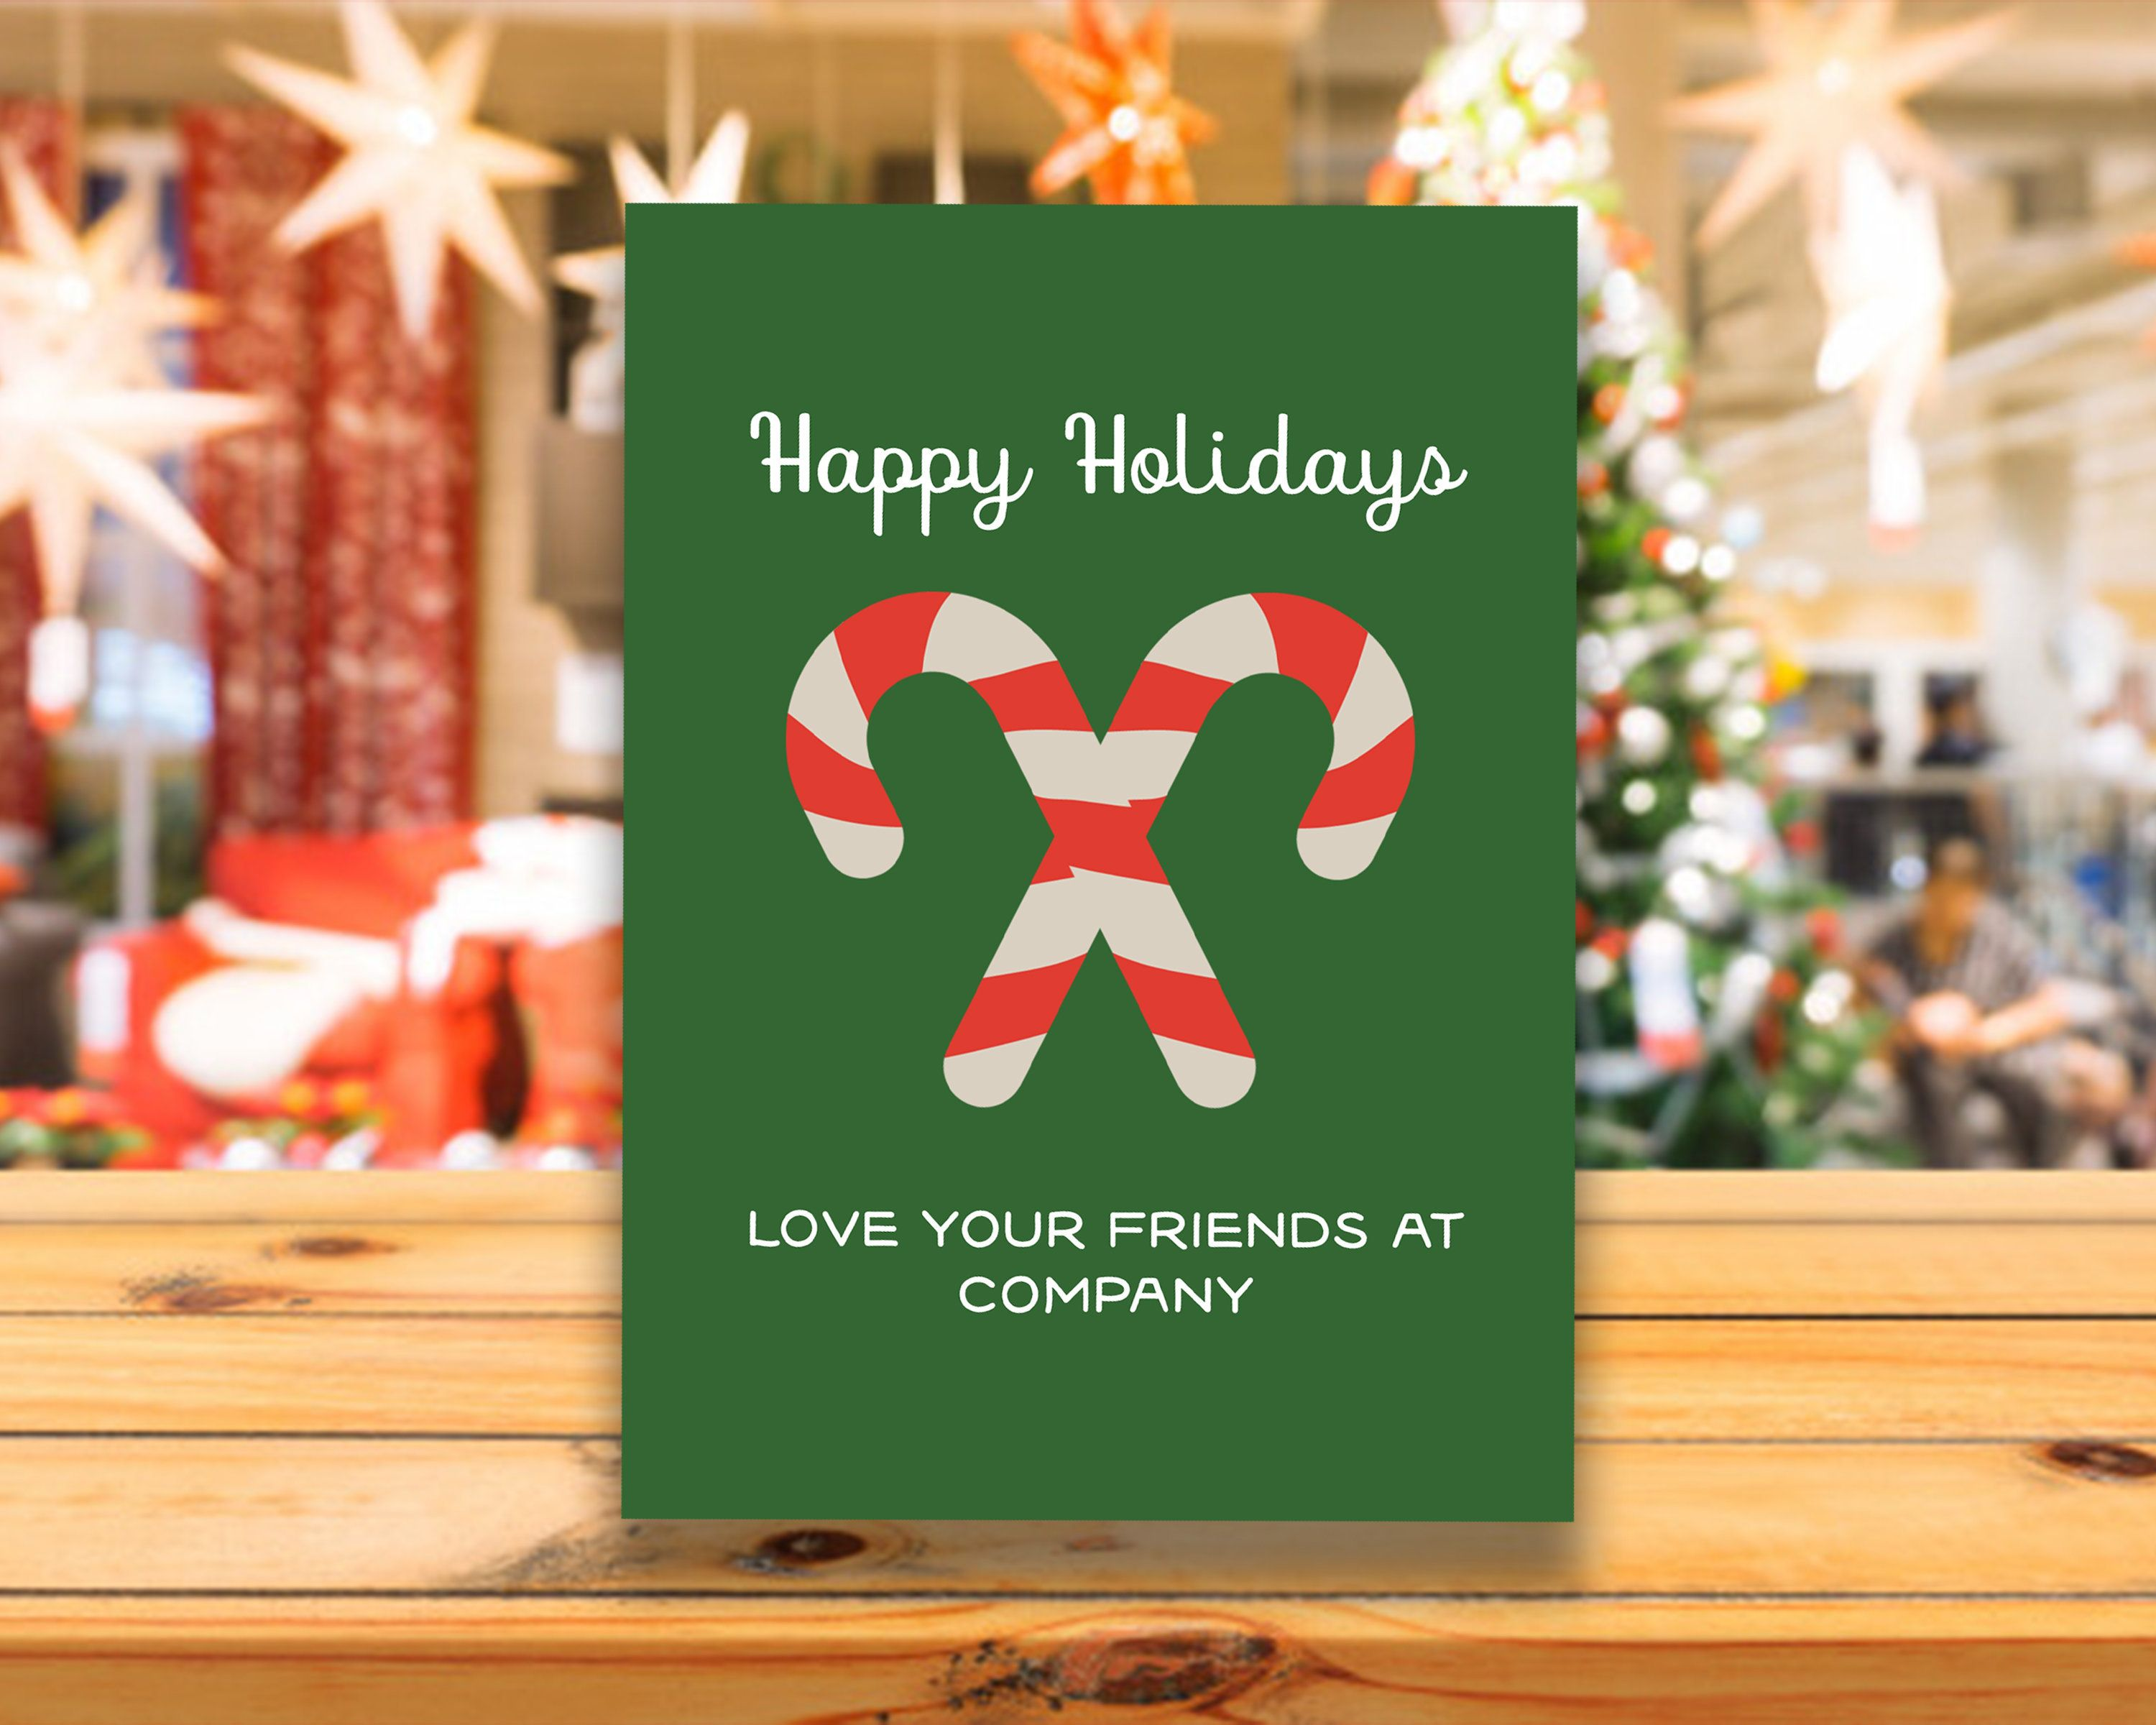 Happy Holidays Candy Cane Company Corporate Christmas Card Mailer or Postcard